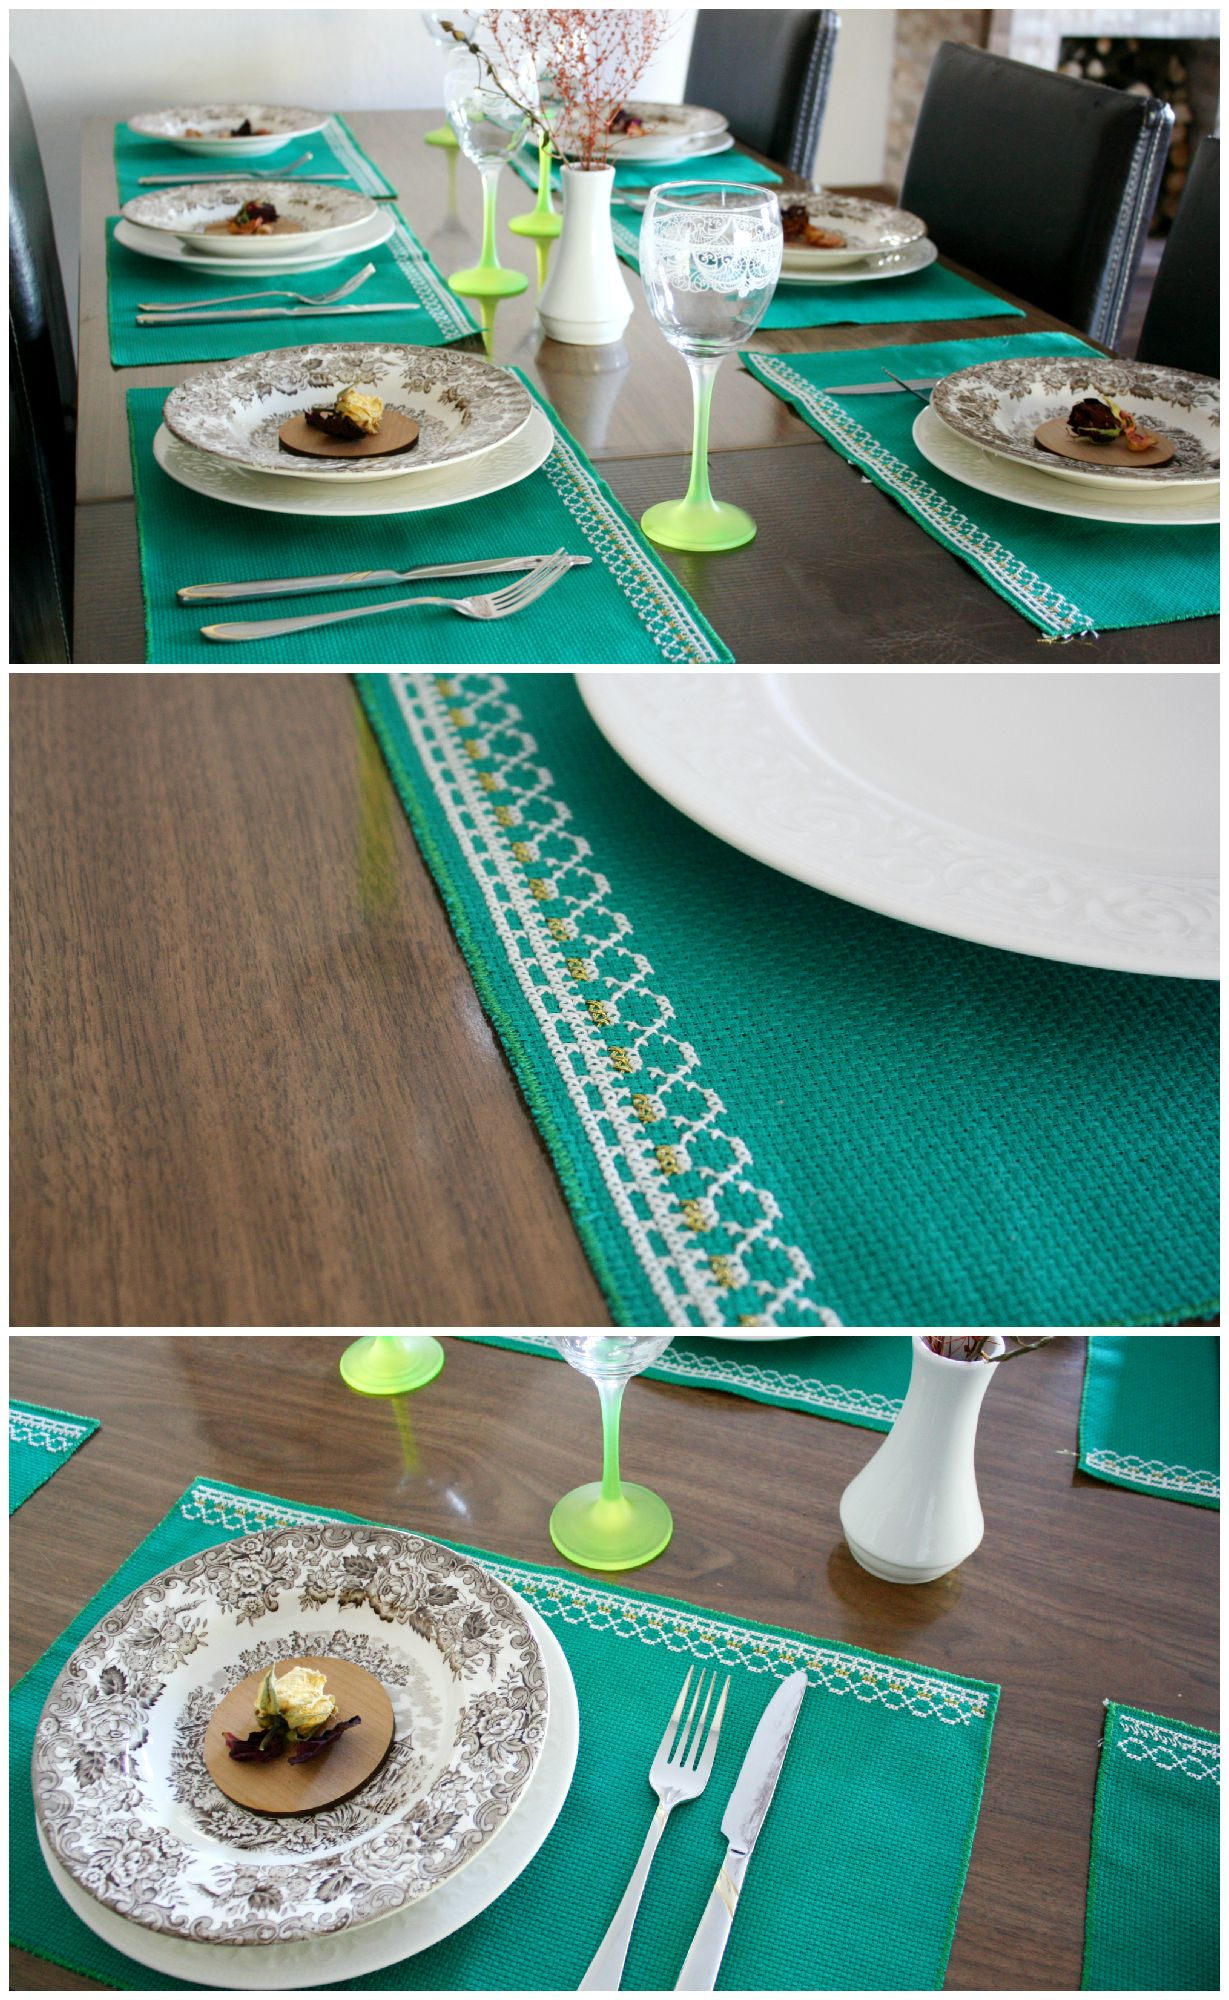 Dining place mat Mother kitchen gift idea Fabric placemats Emerald ...